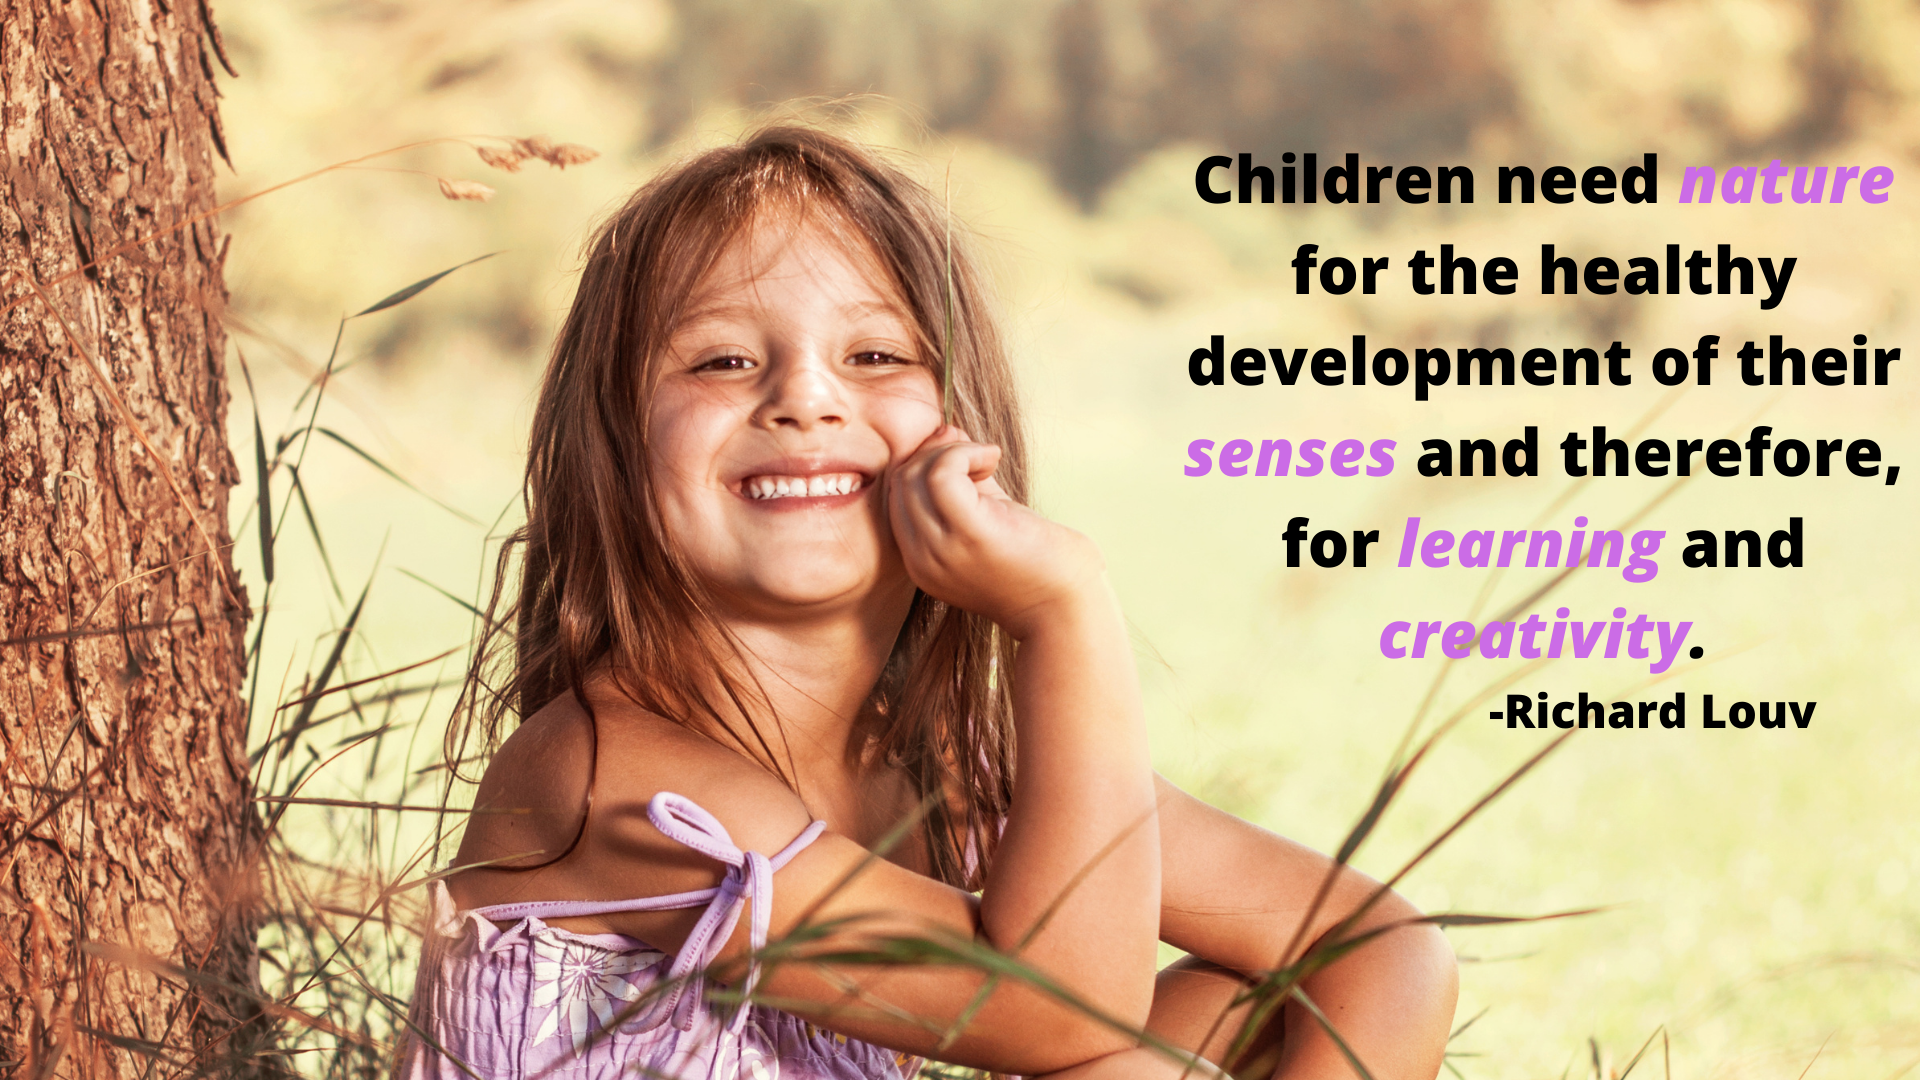 """A girl outside, by a tree with a saying, """"Children need nature for the healthy development of their senses and therefore, for learning and creativity."""""""